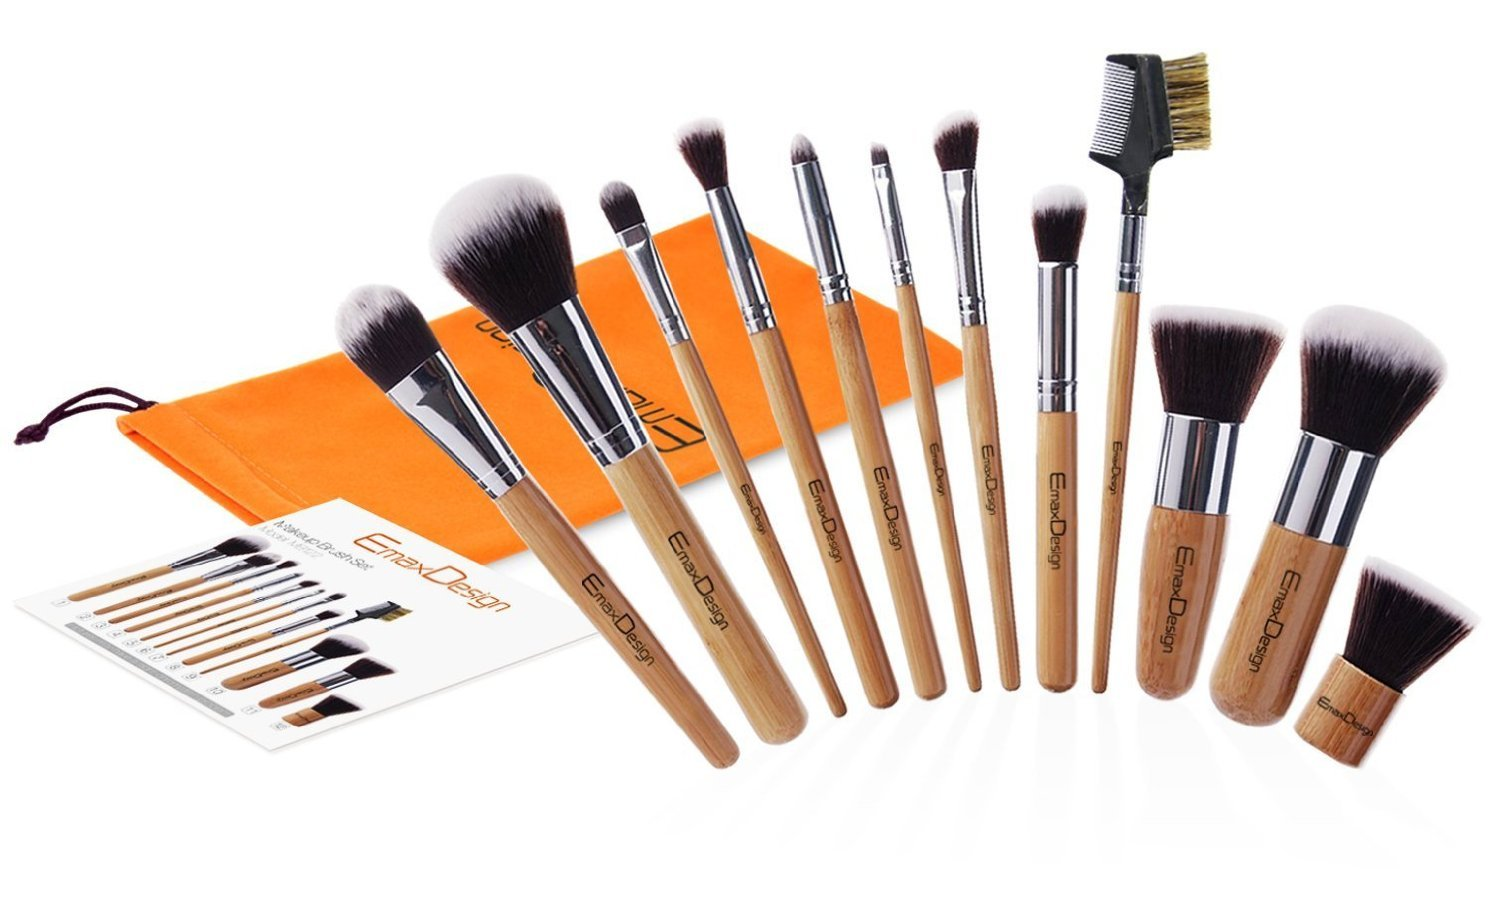 EmaxDesign 12 Pieces Makeup Brush Set Professional Bamboo Handle Premium  Synthetic Kabuki